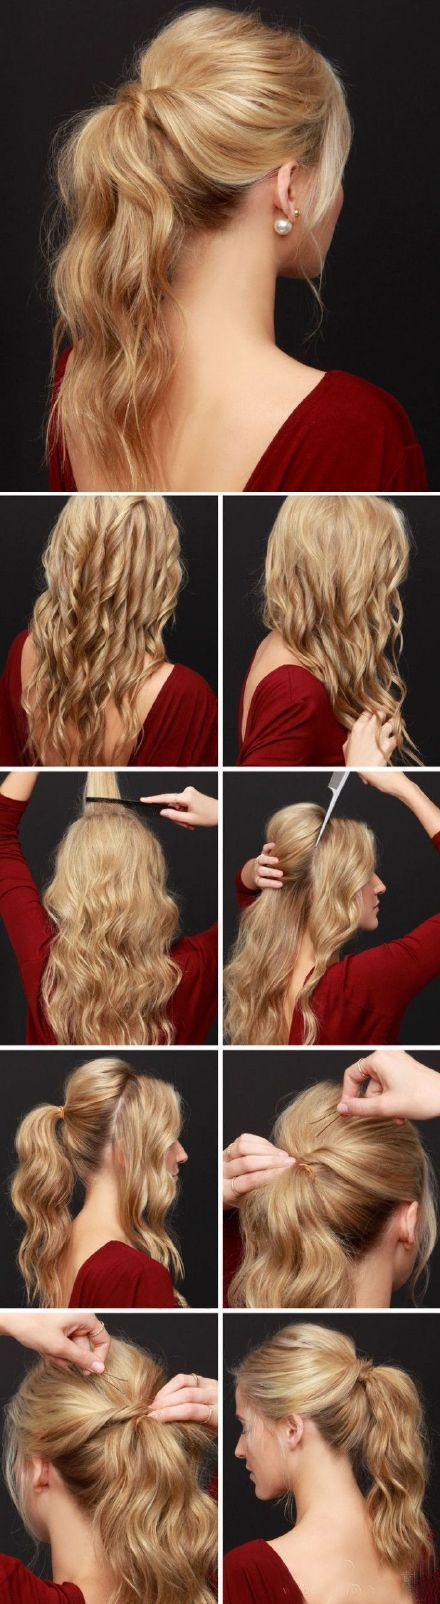 Romantic long curly hair ponytail style